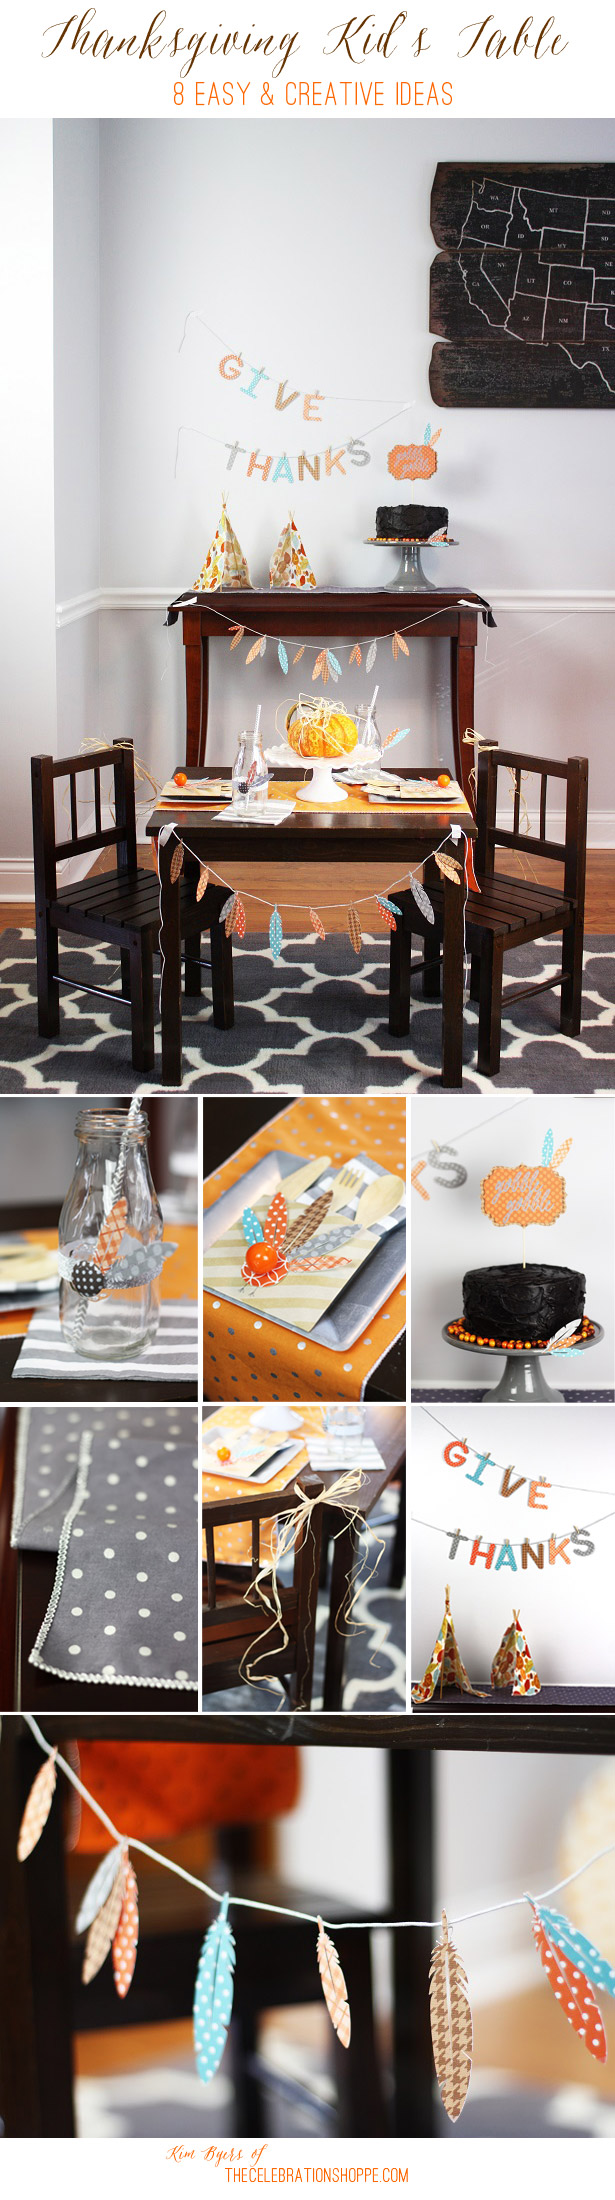 8 Easy & Creative Thanksgiving Kid's Table Crafts | Kim Byers, TheCelebrationShoppe.com